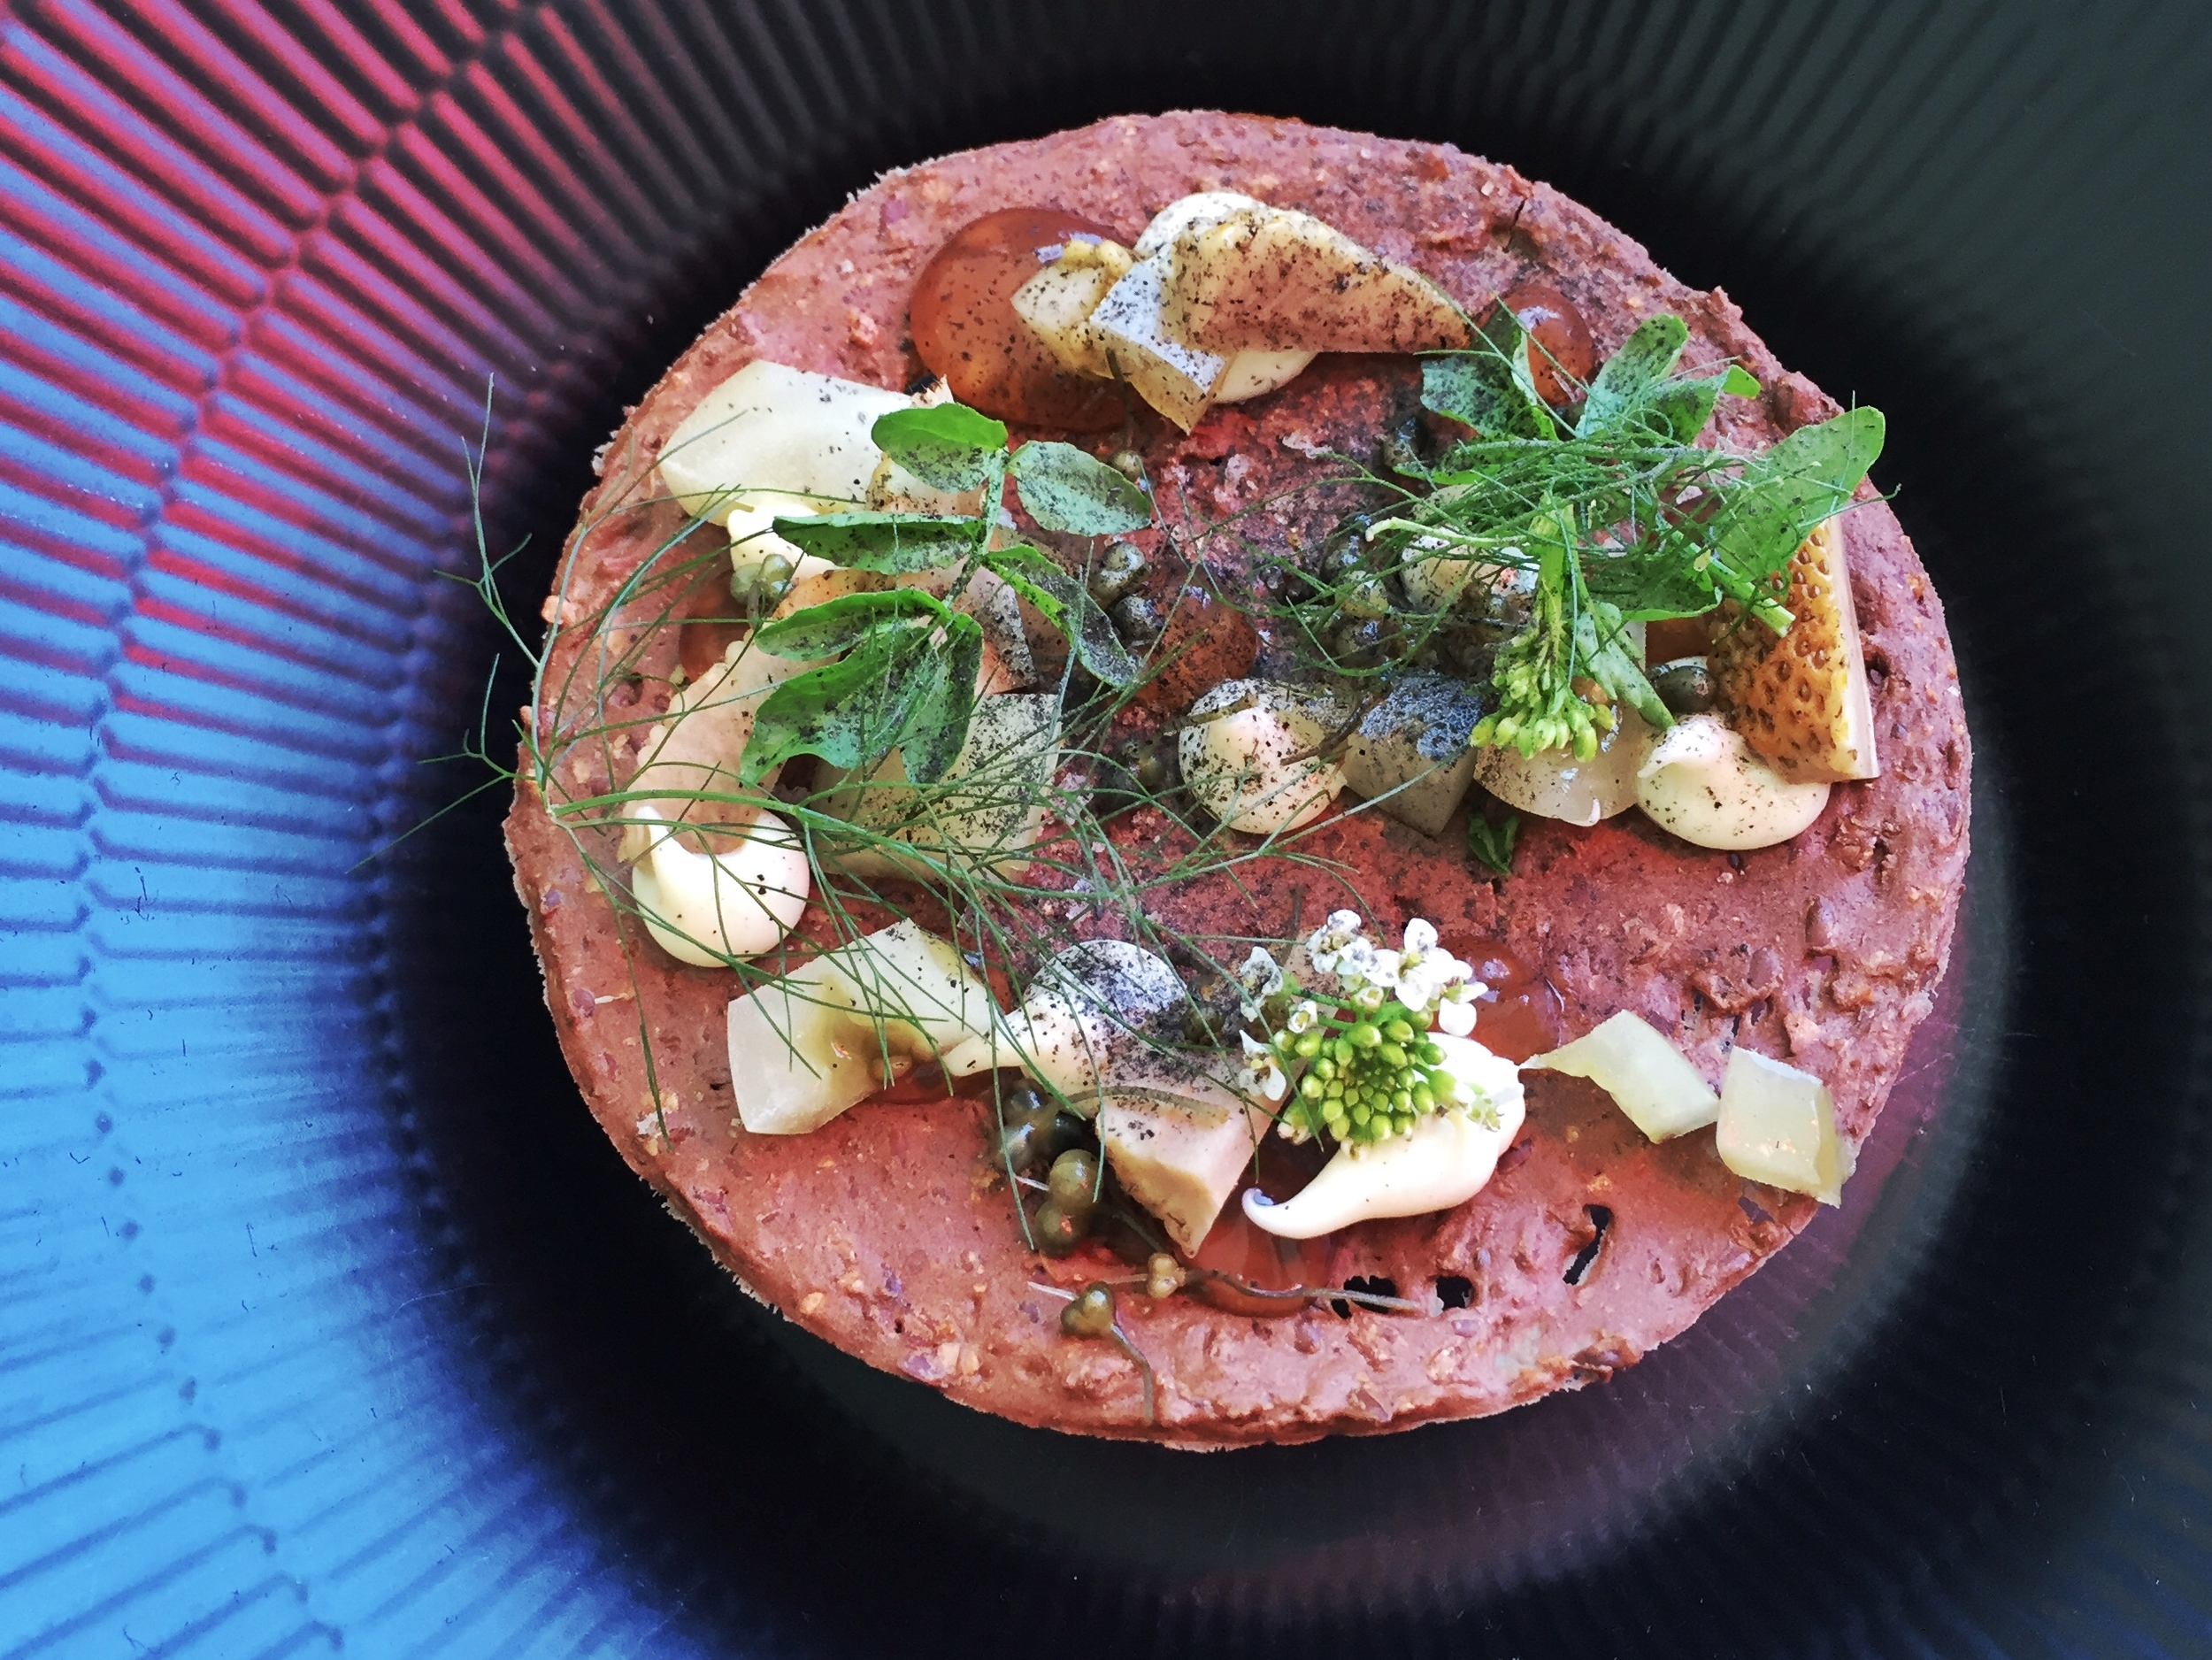 Foie gras underneath a rye cracker topped with green strawberries and an assortment of herbs.